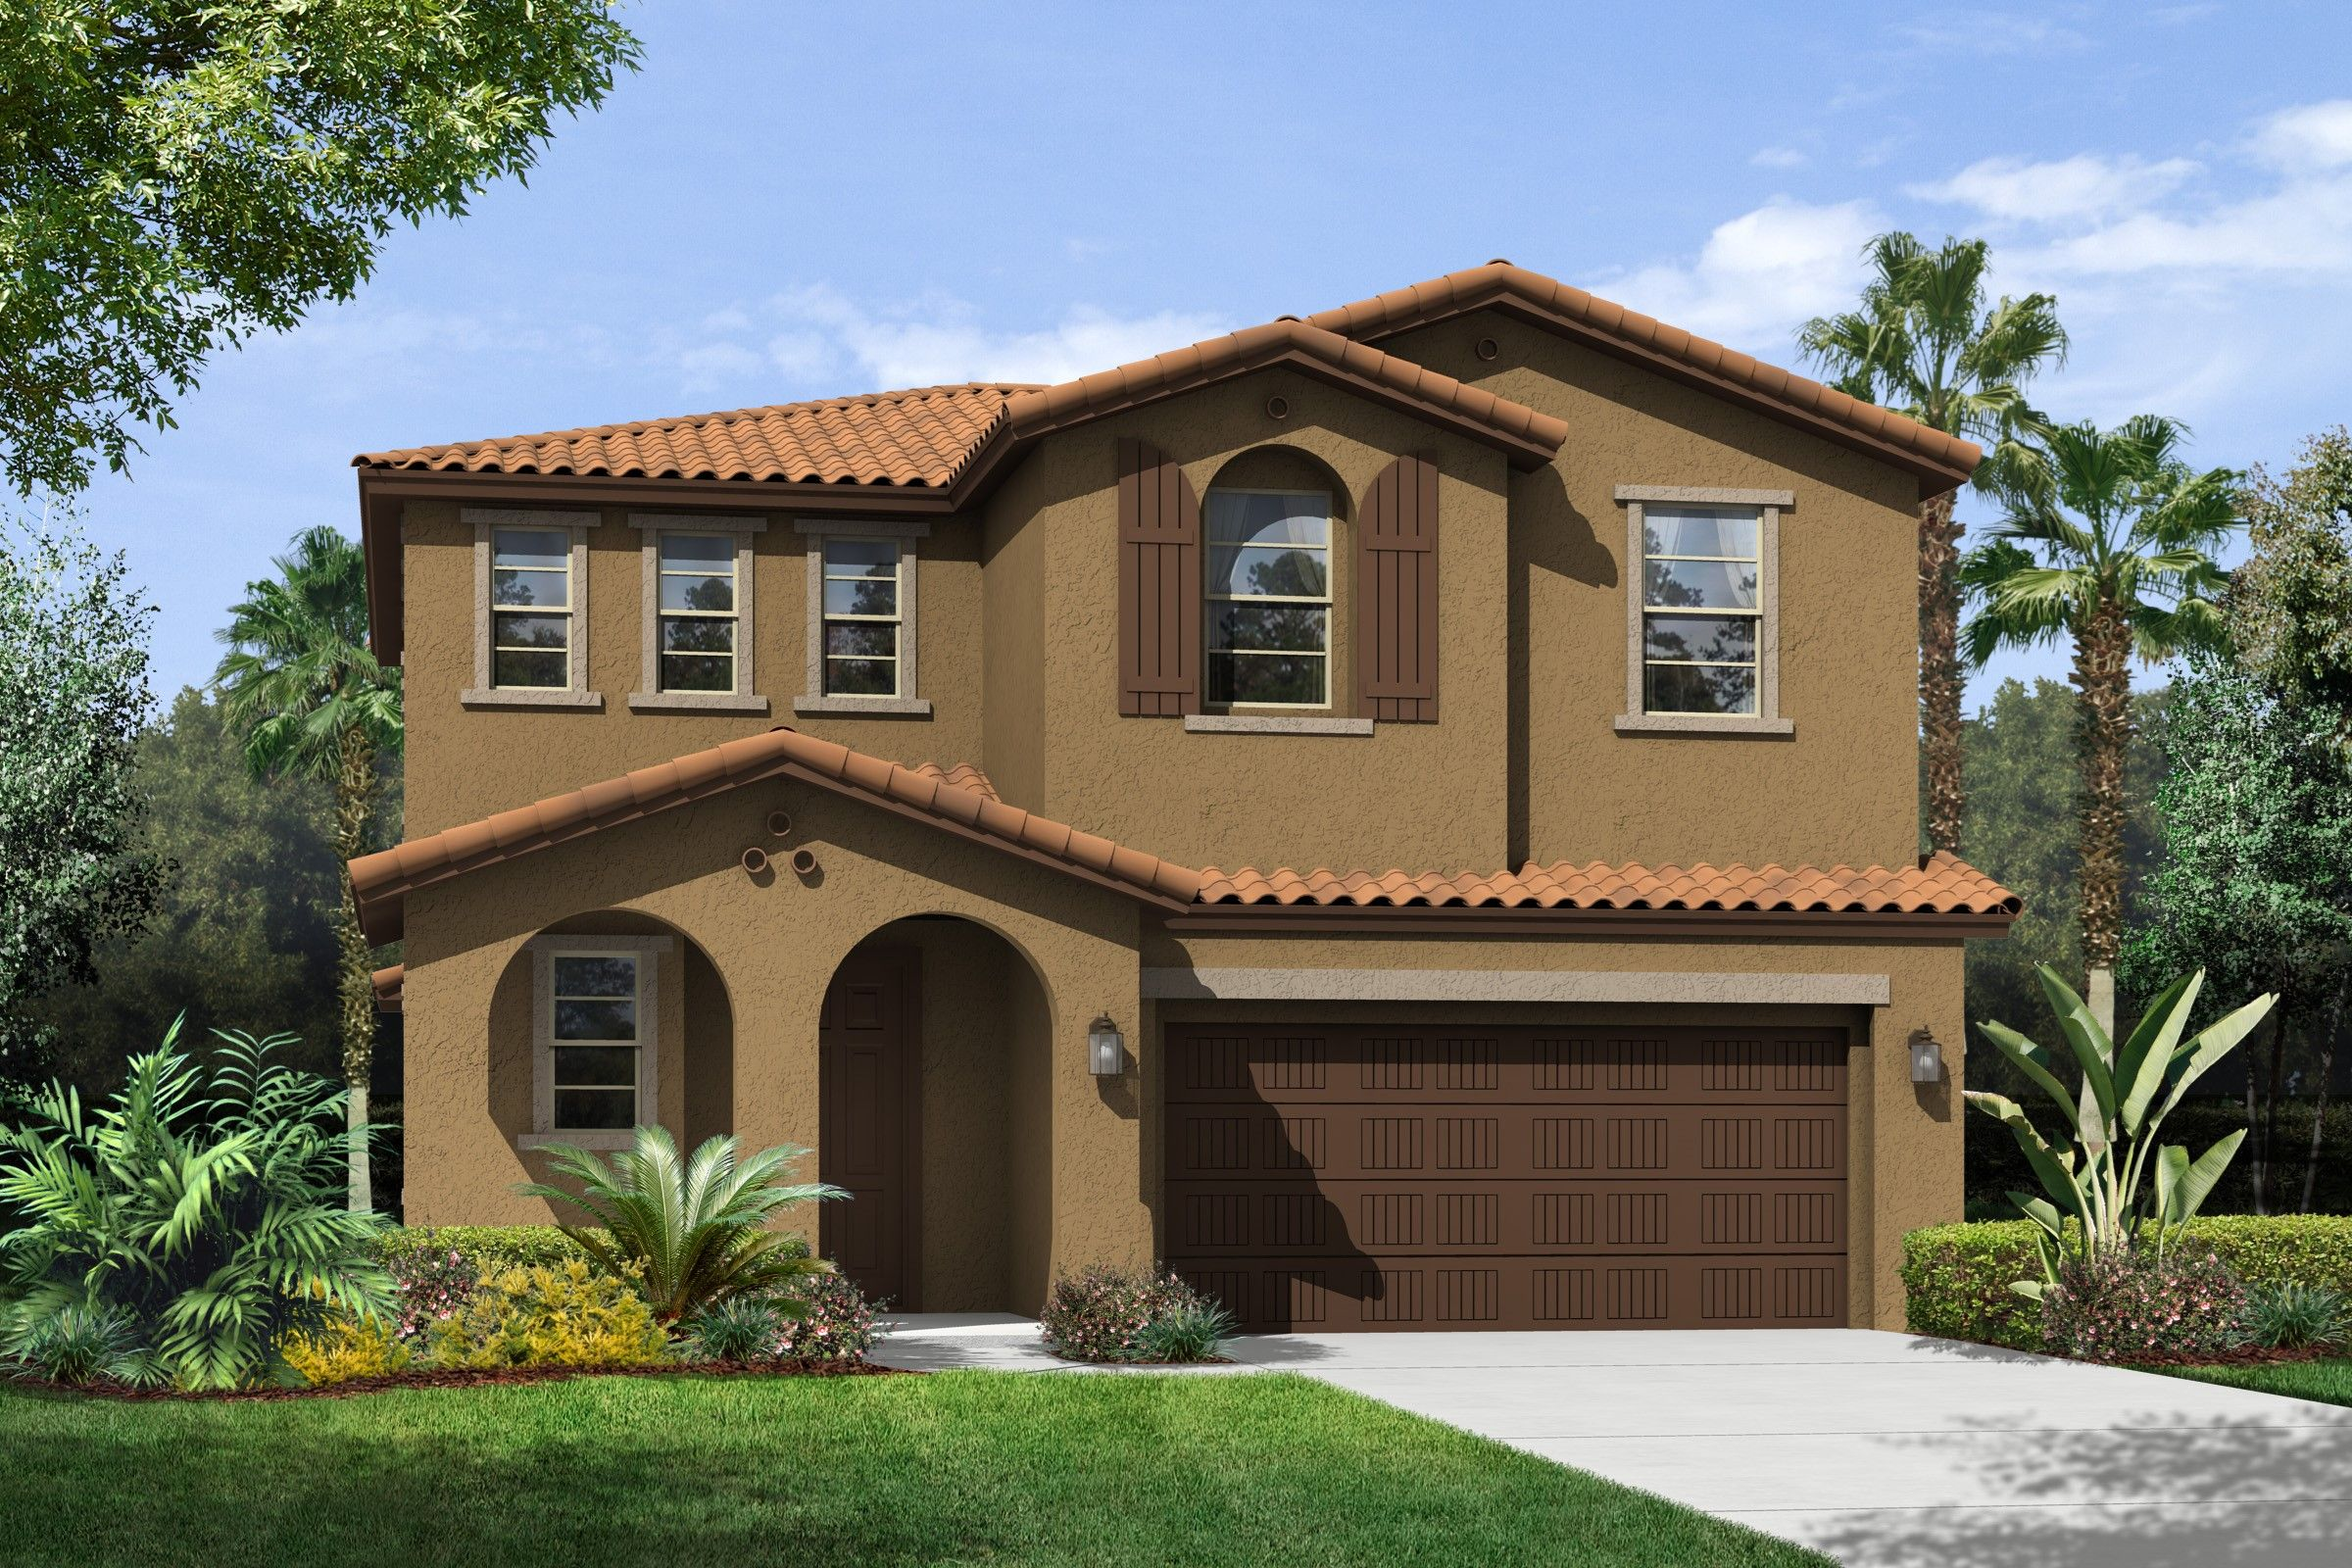 K hovnanian r homes traditions at catania capital for House for sale glendale